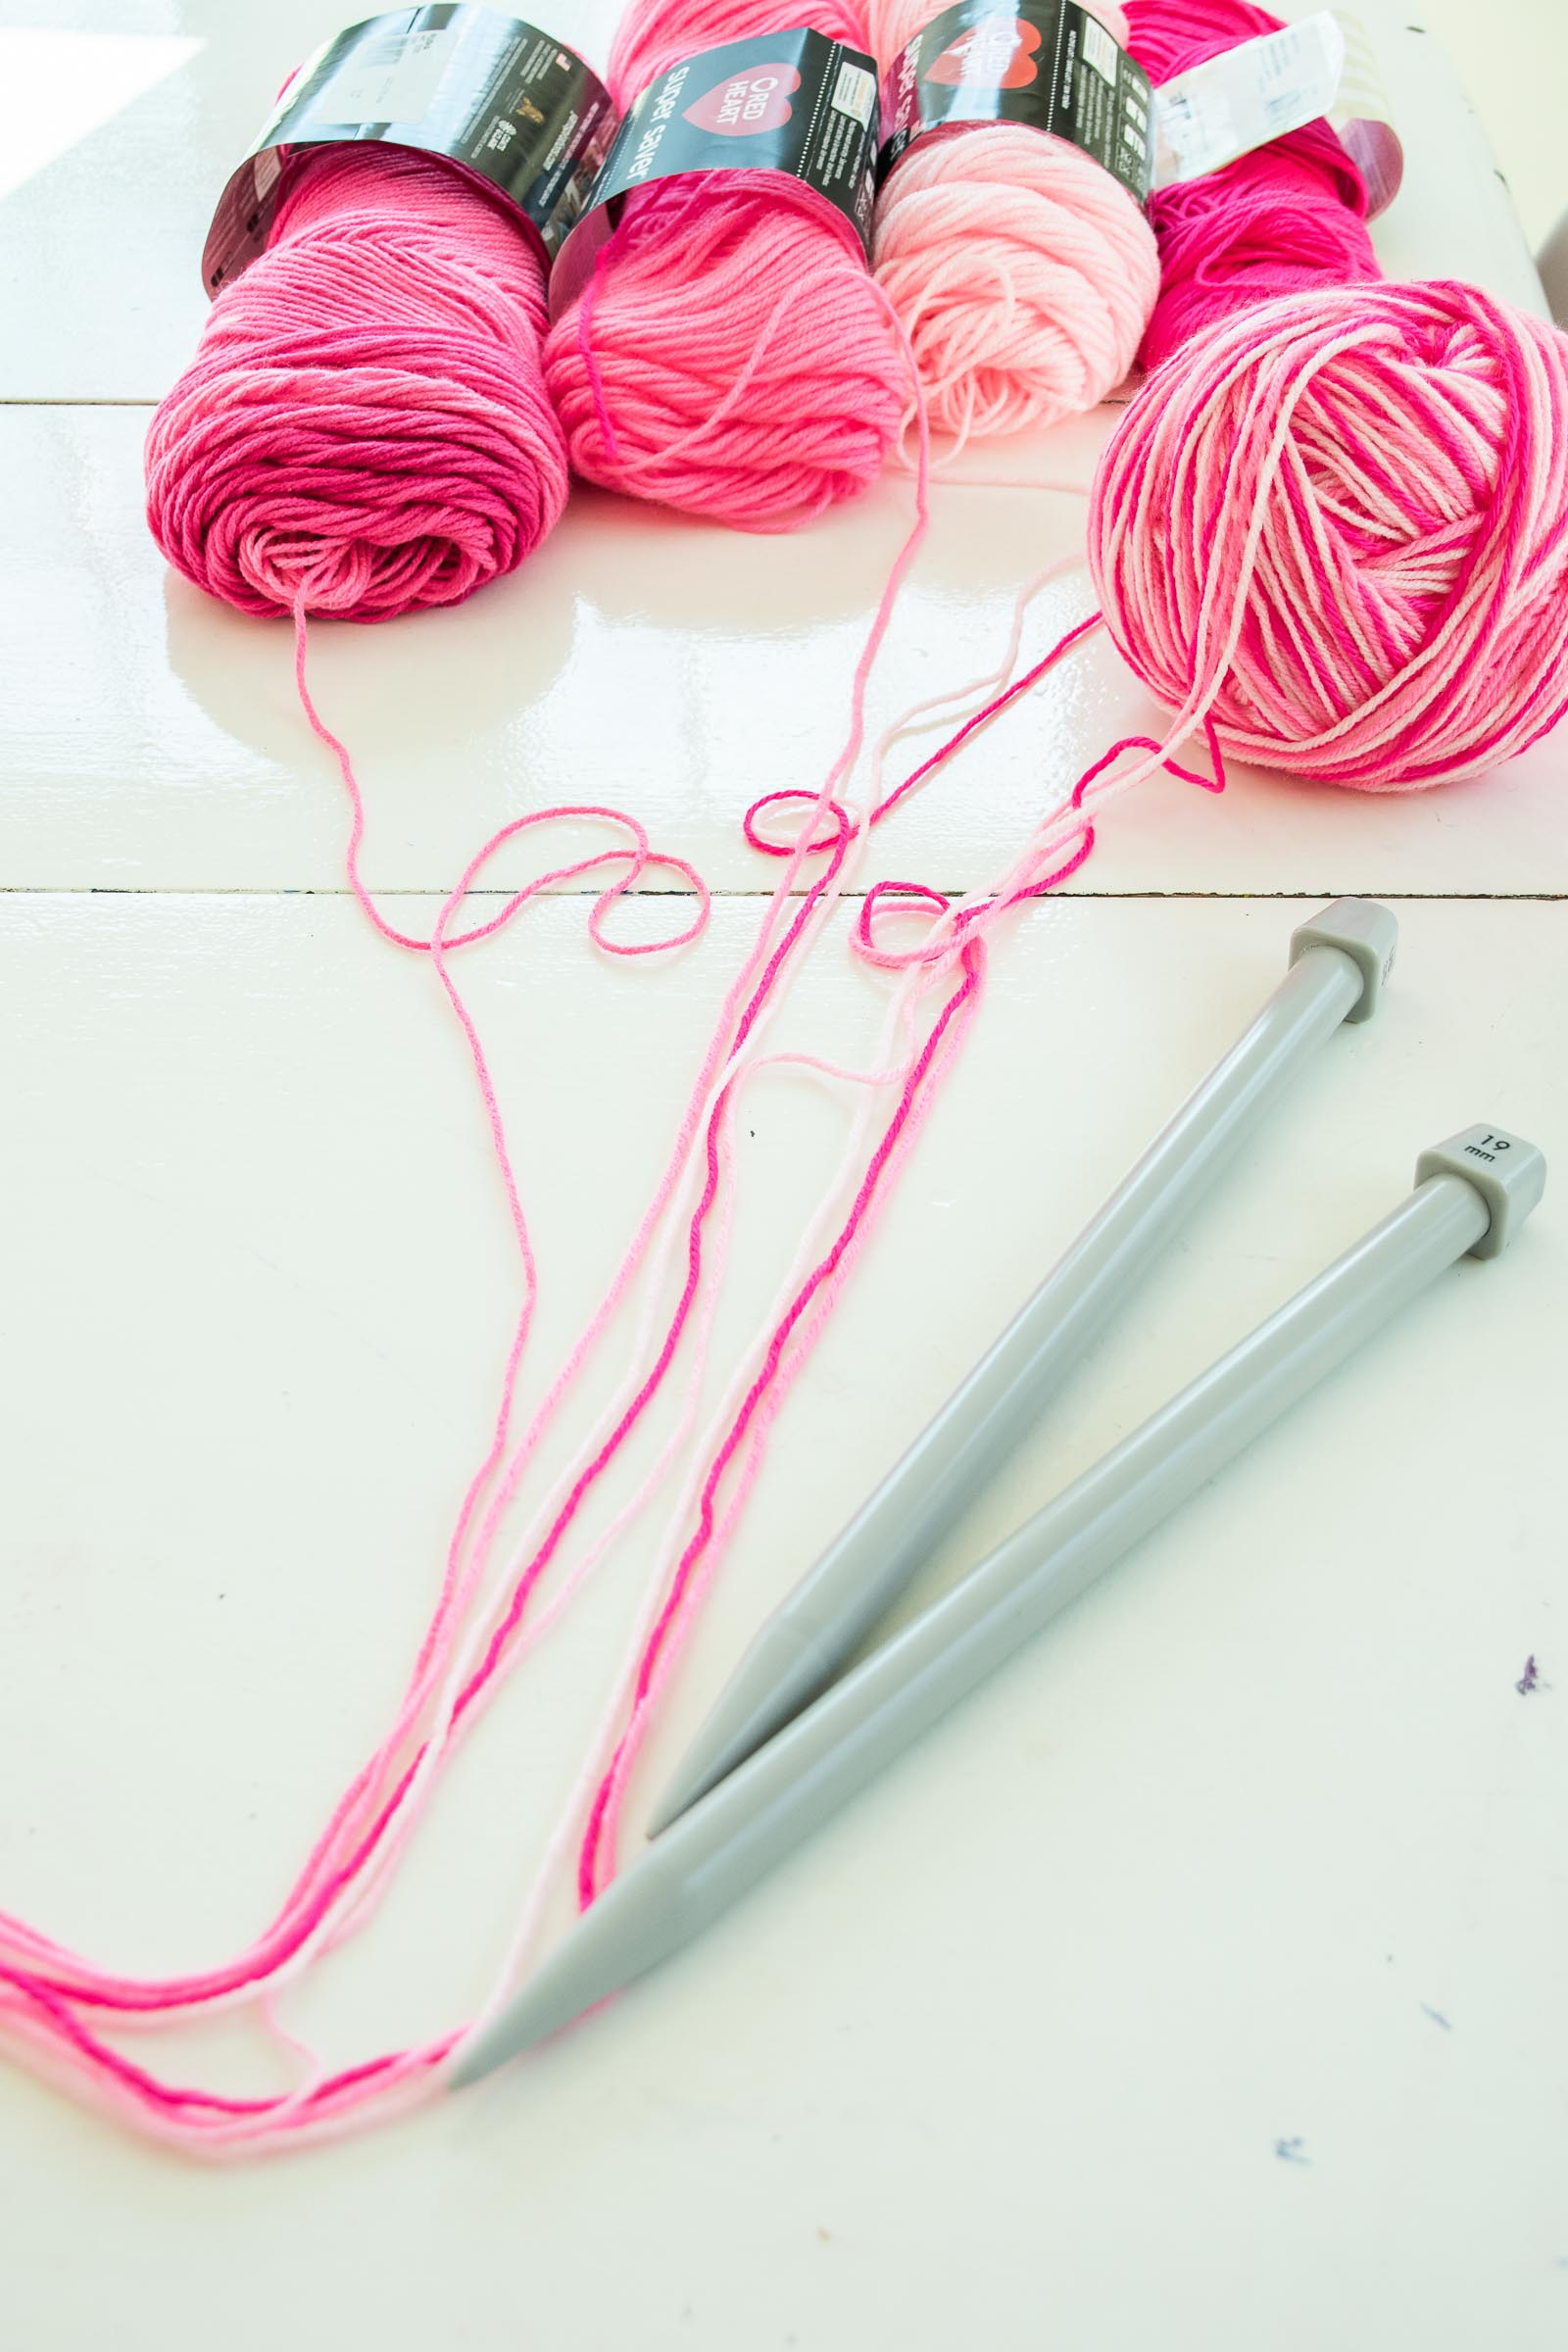 prepping yarn for hearts